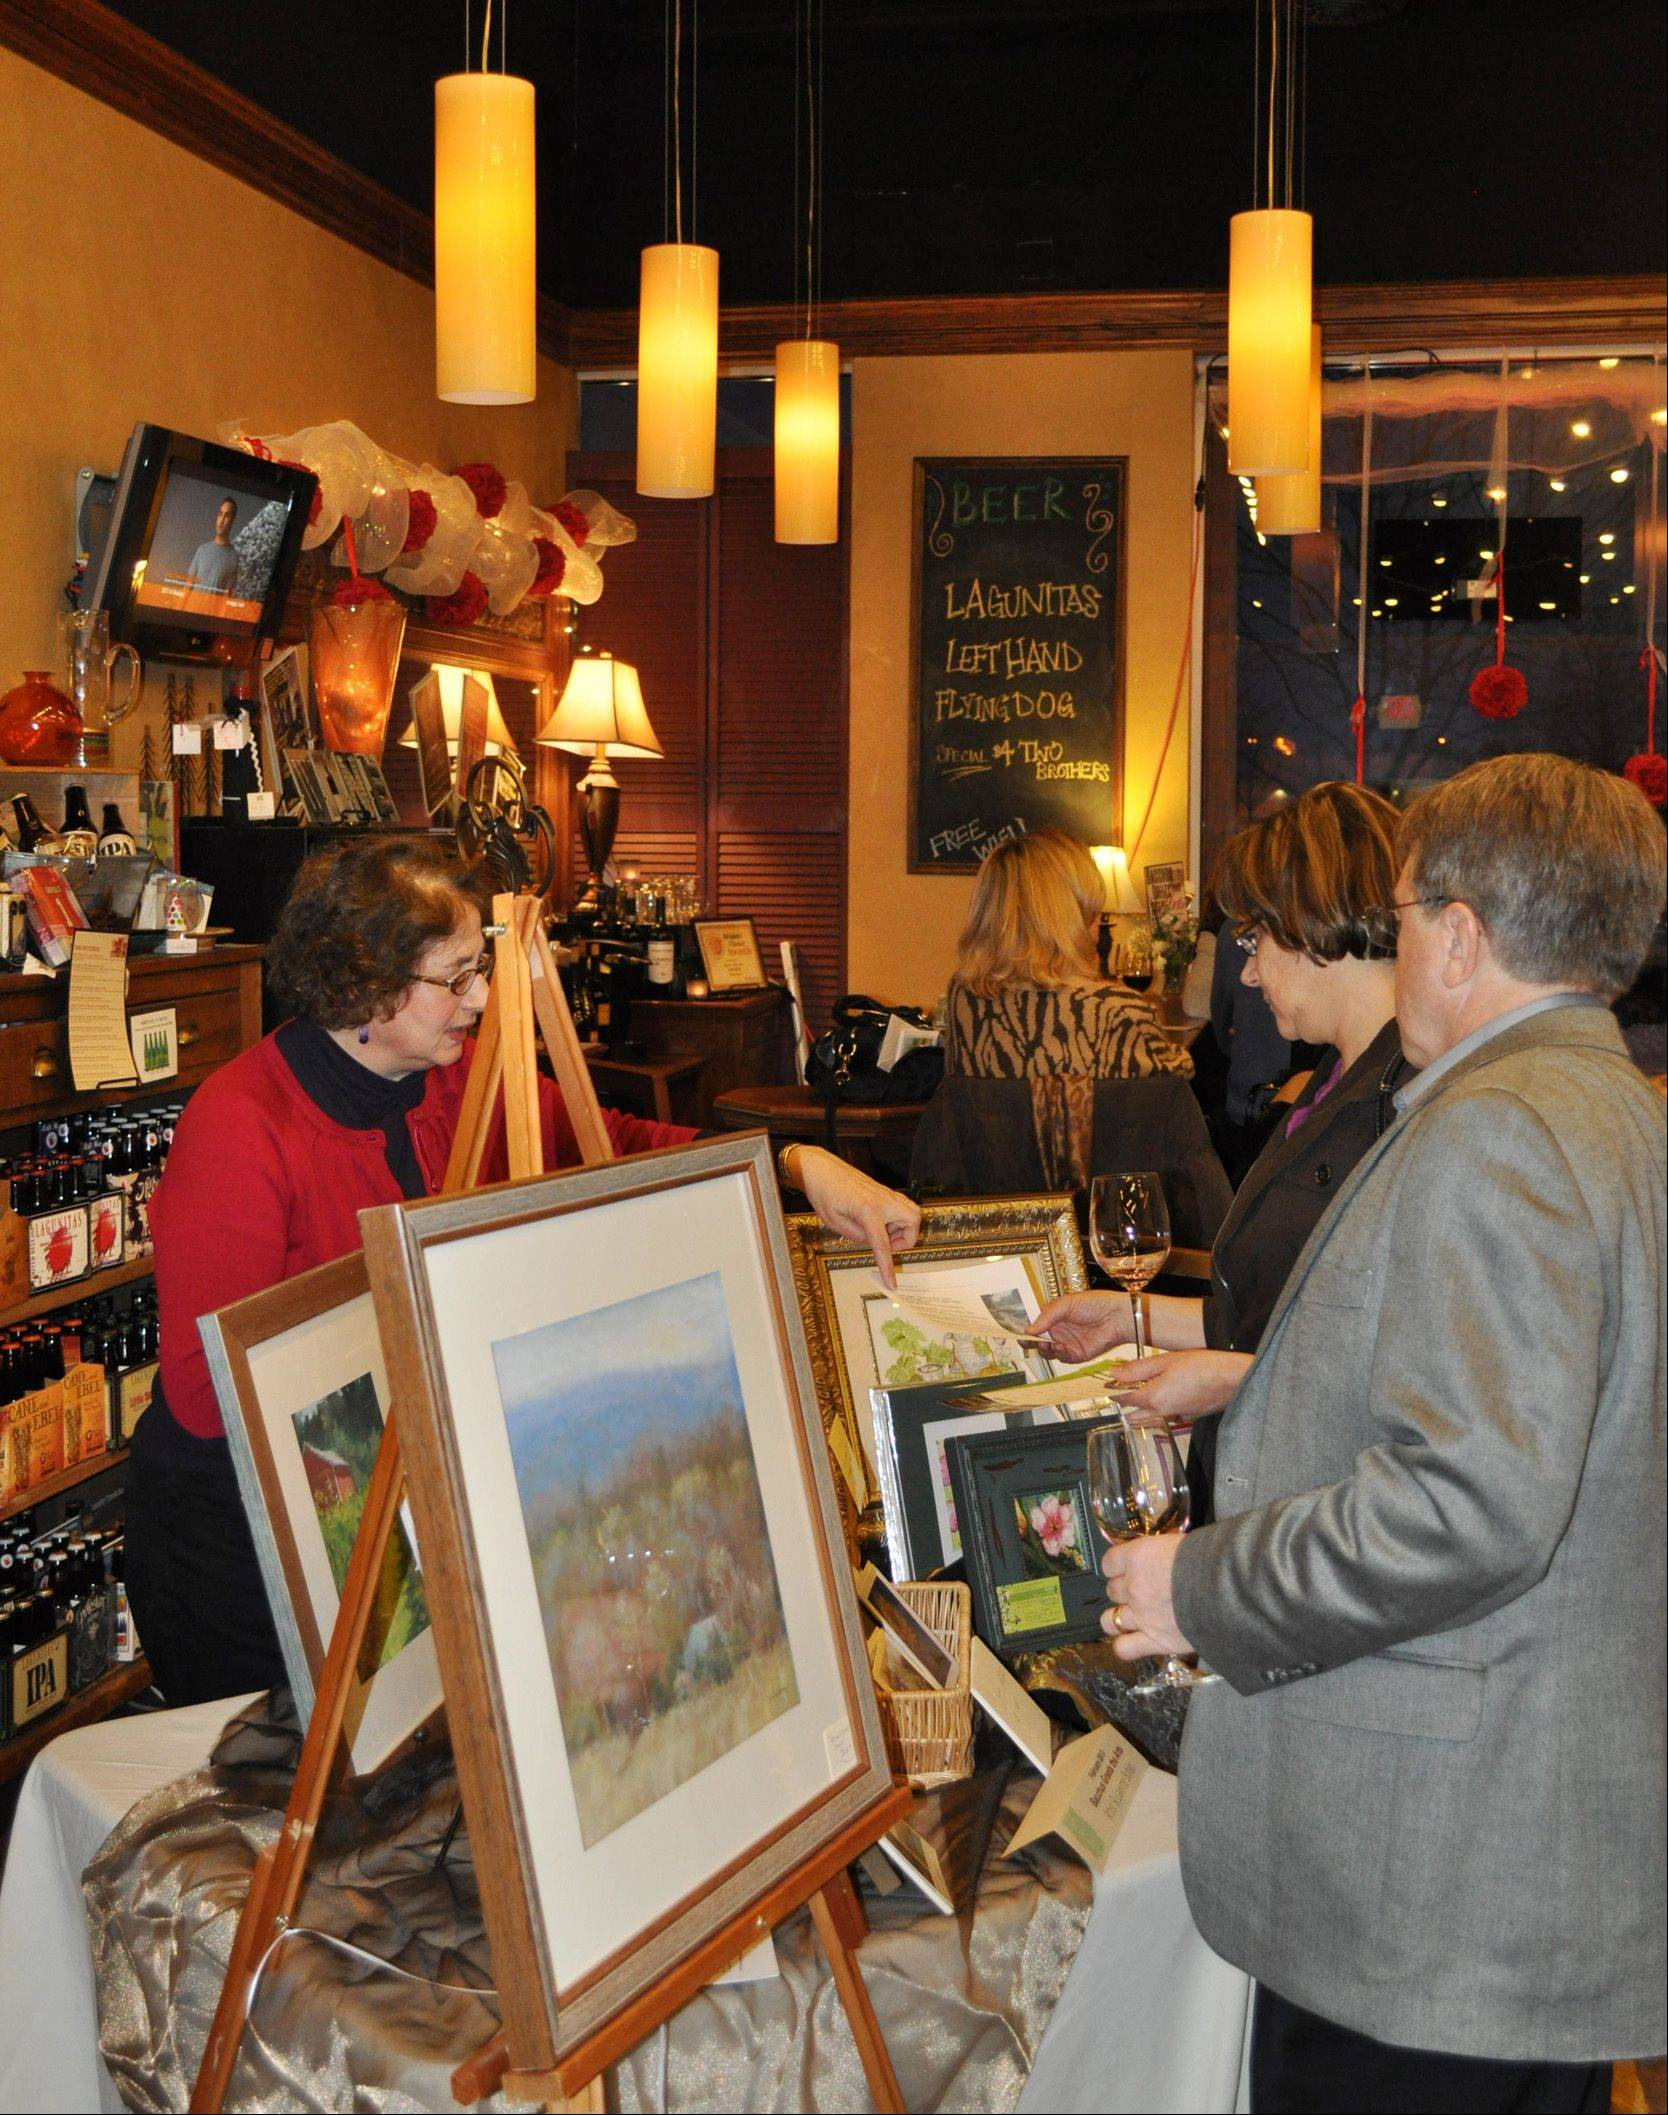 Gibby's Wine Den in Geneva is seeking submissions for its upcoming Bacchus Greets the Arts event. Artists who would like to display and sell their artwork can contact Gibby's to participate in the March 14 event, which is in its eighth year.